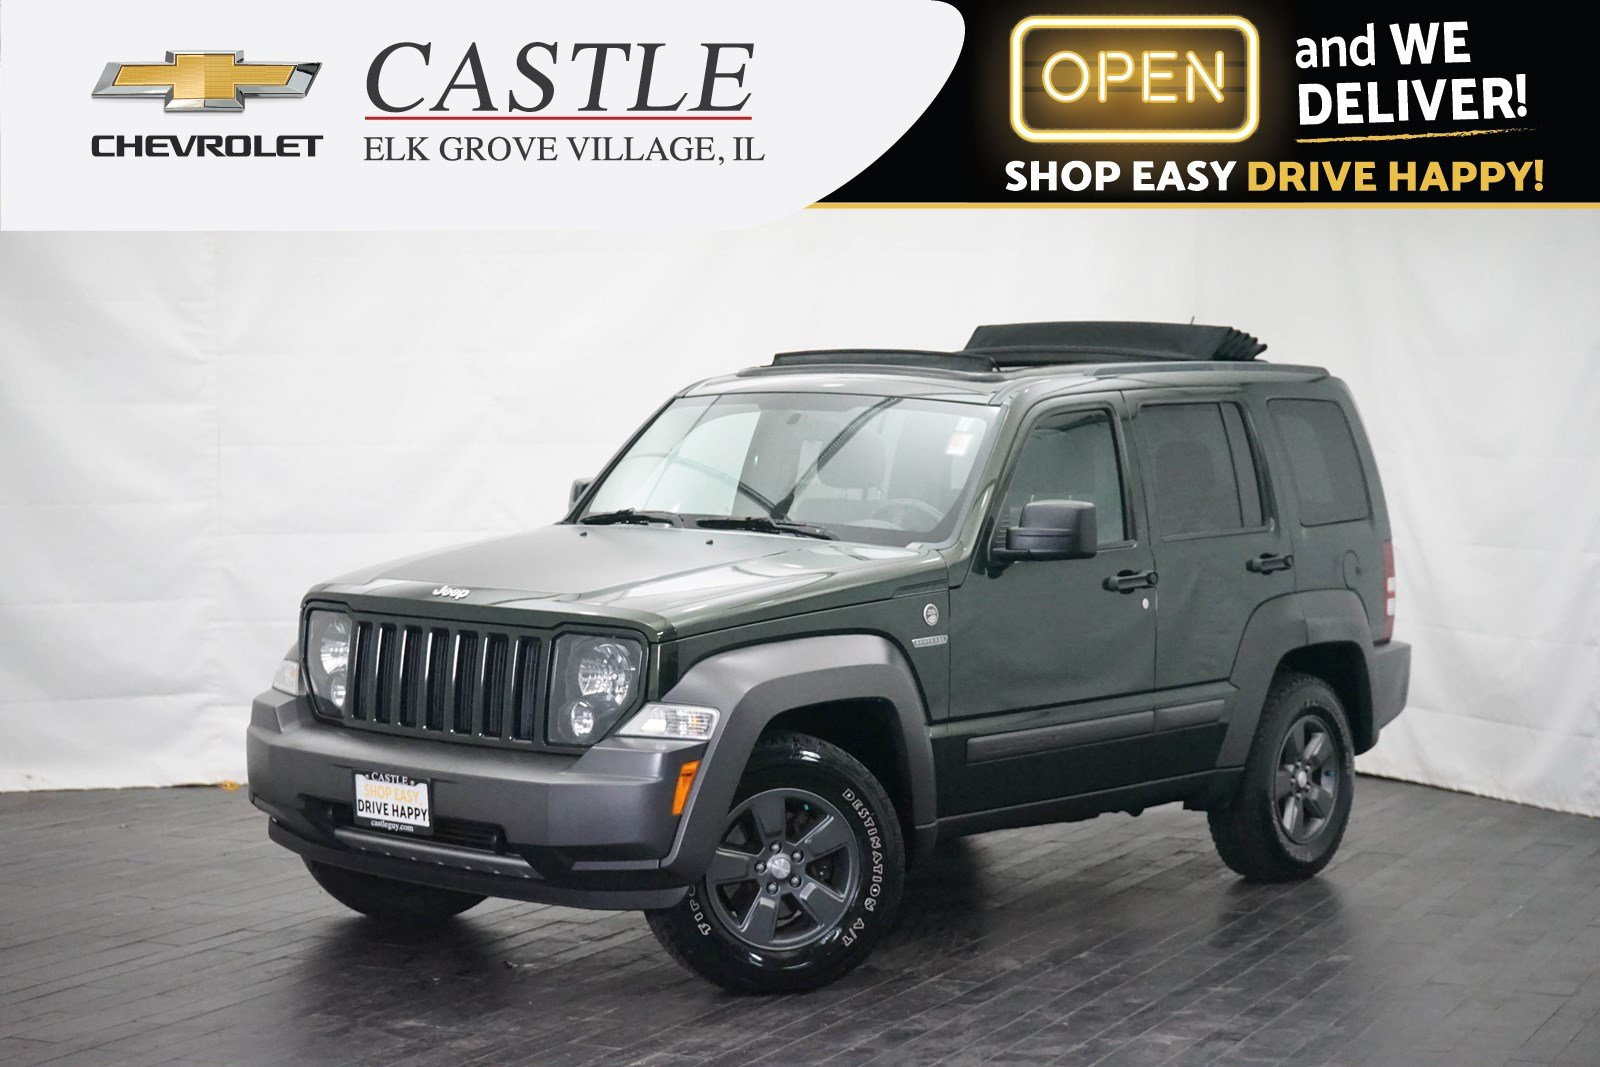 Pre-Owned 2010 Jeep Liberty Renegade